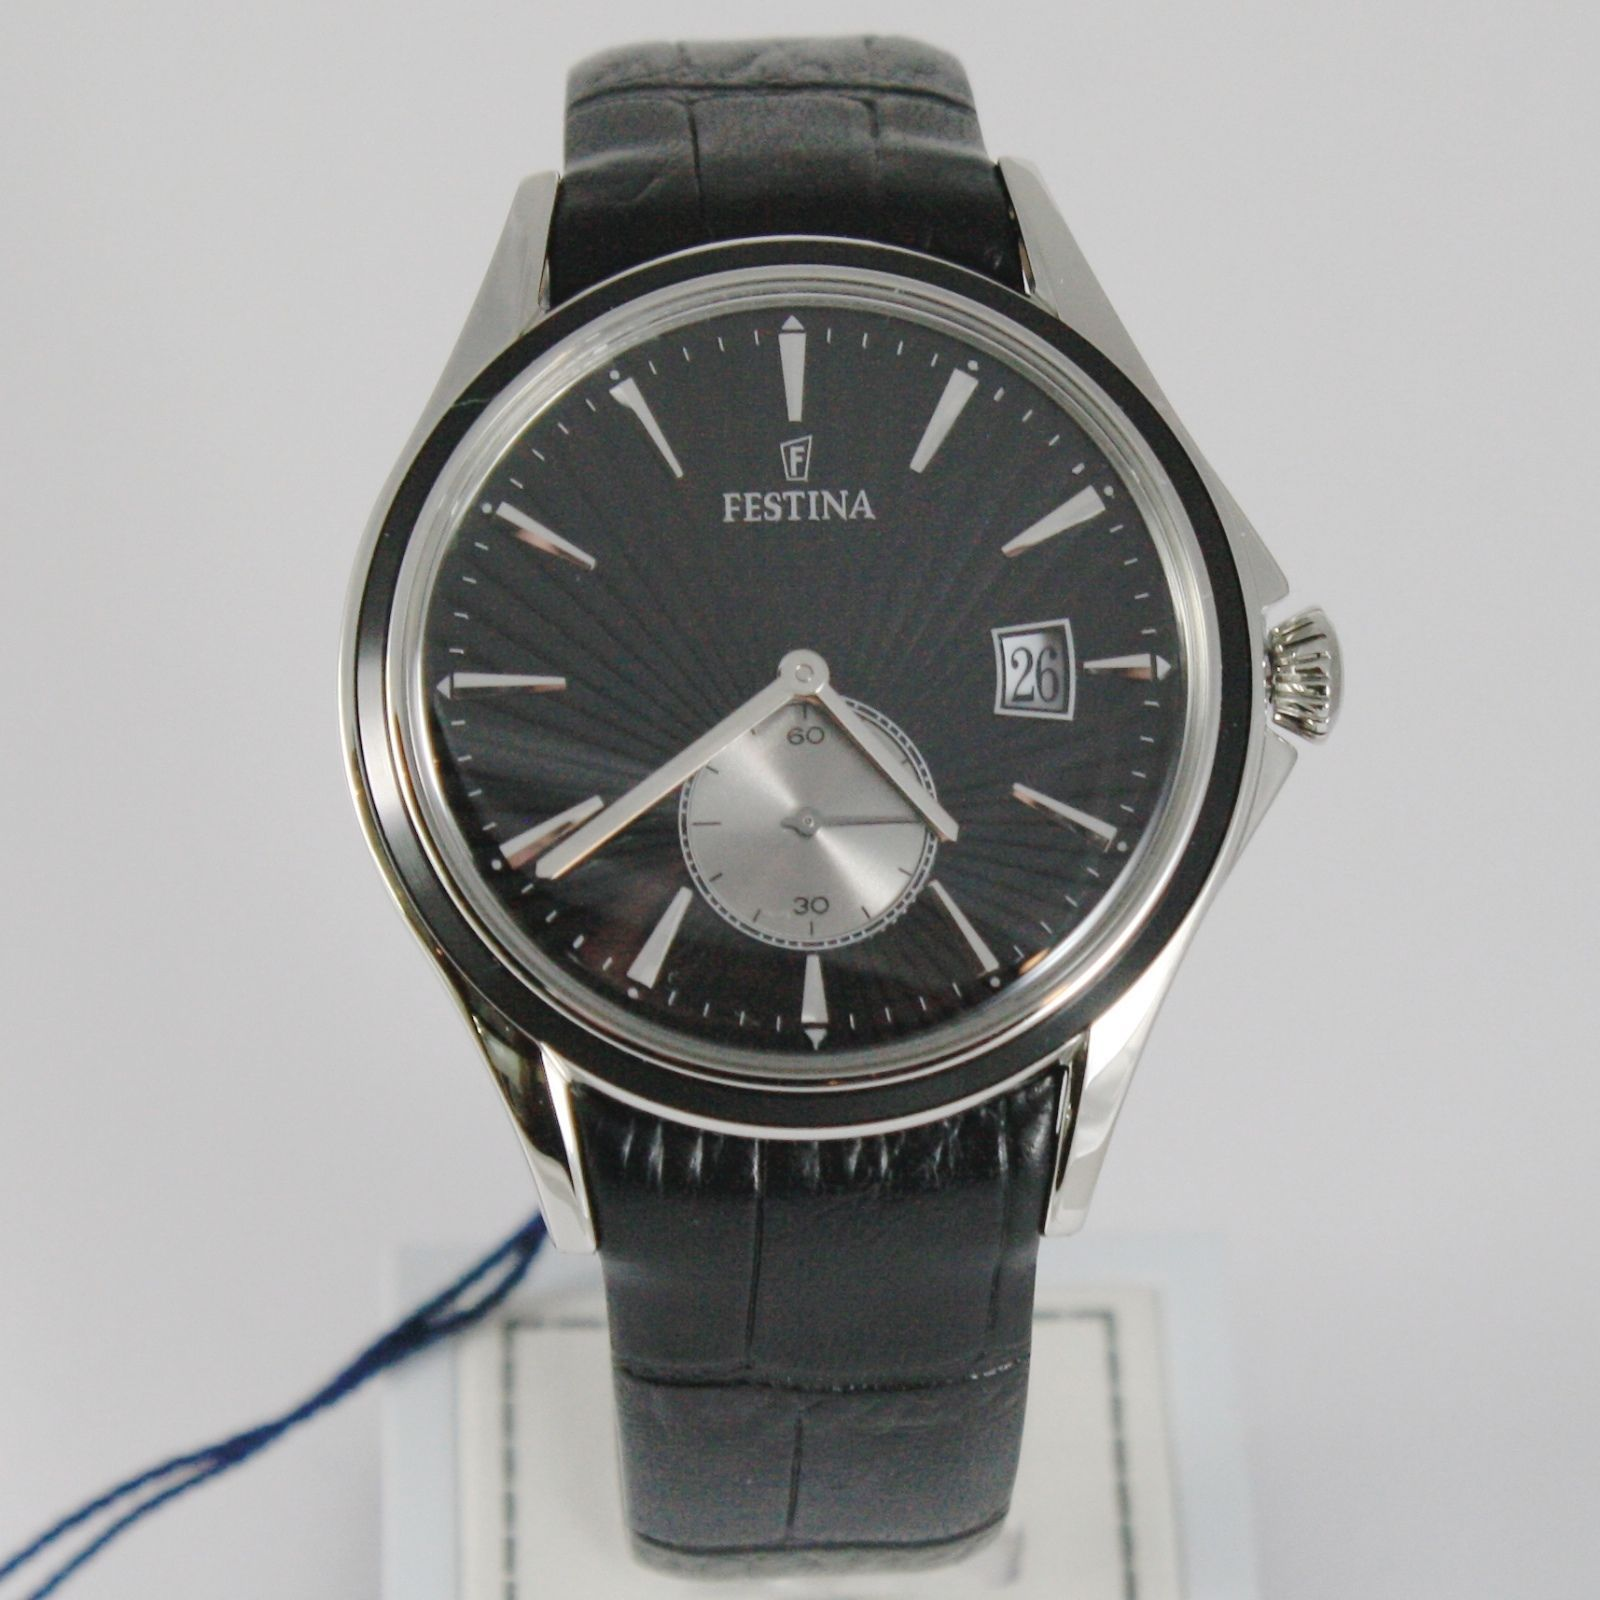 FESTINA WATCH QUARTZ MOVEMENT, 42 MM CASE, 3 ATM, BLACK FACE, LEATHER BAND